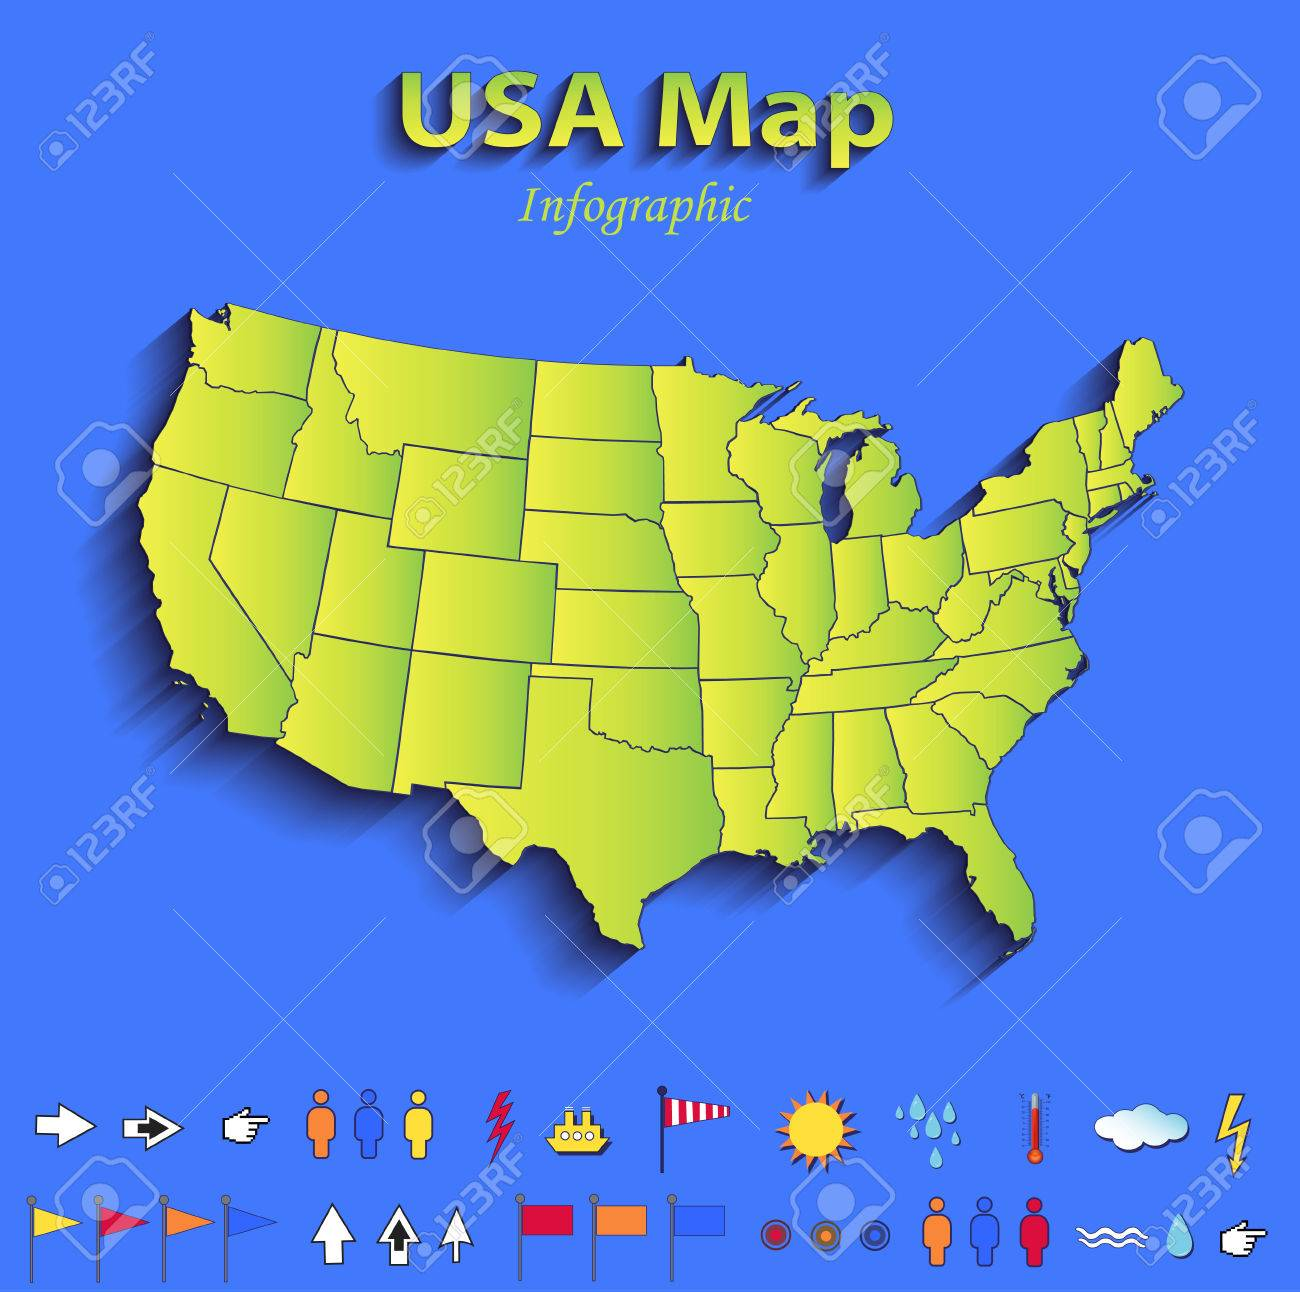 USA Map Infographic Political Map Individual States Blue Green - Map usa political